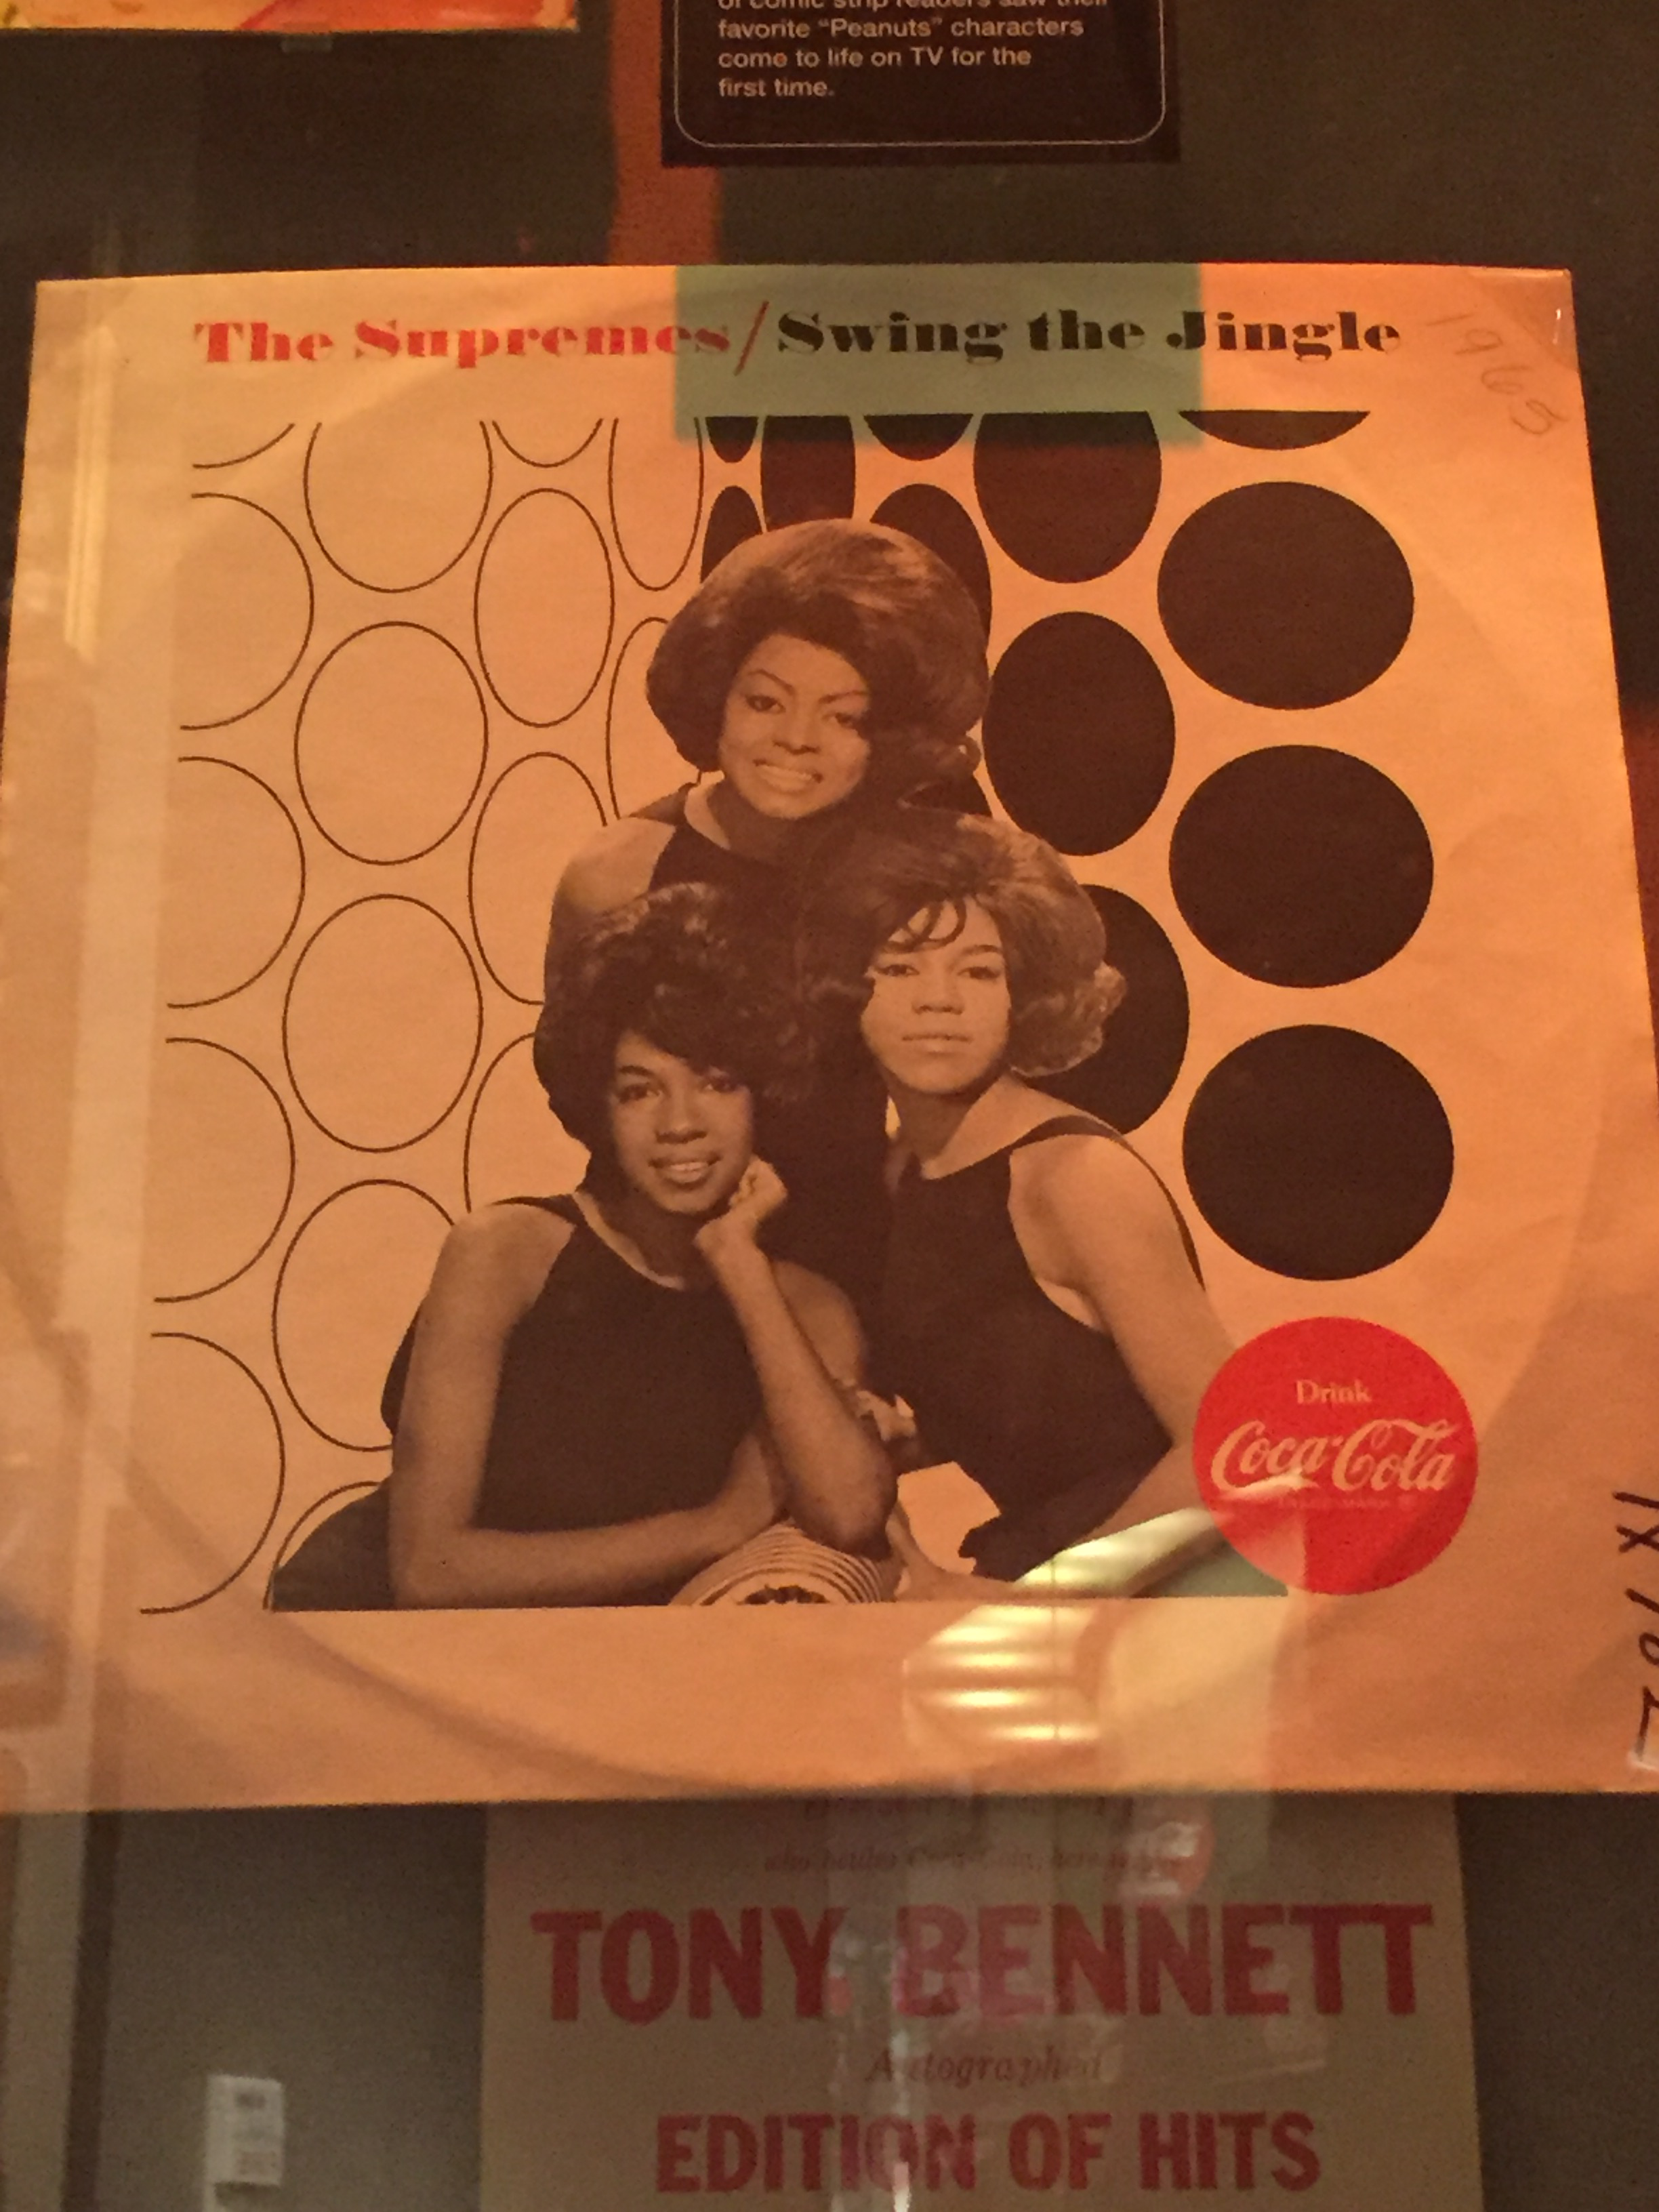 The Supremes Swing the Jingle Coca-Cola record.